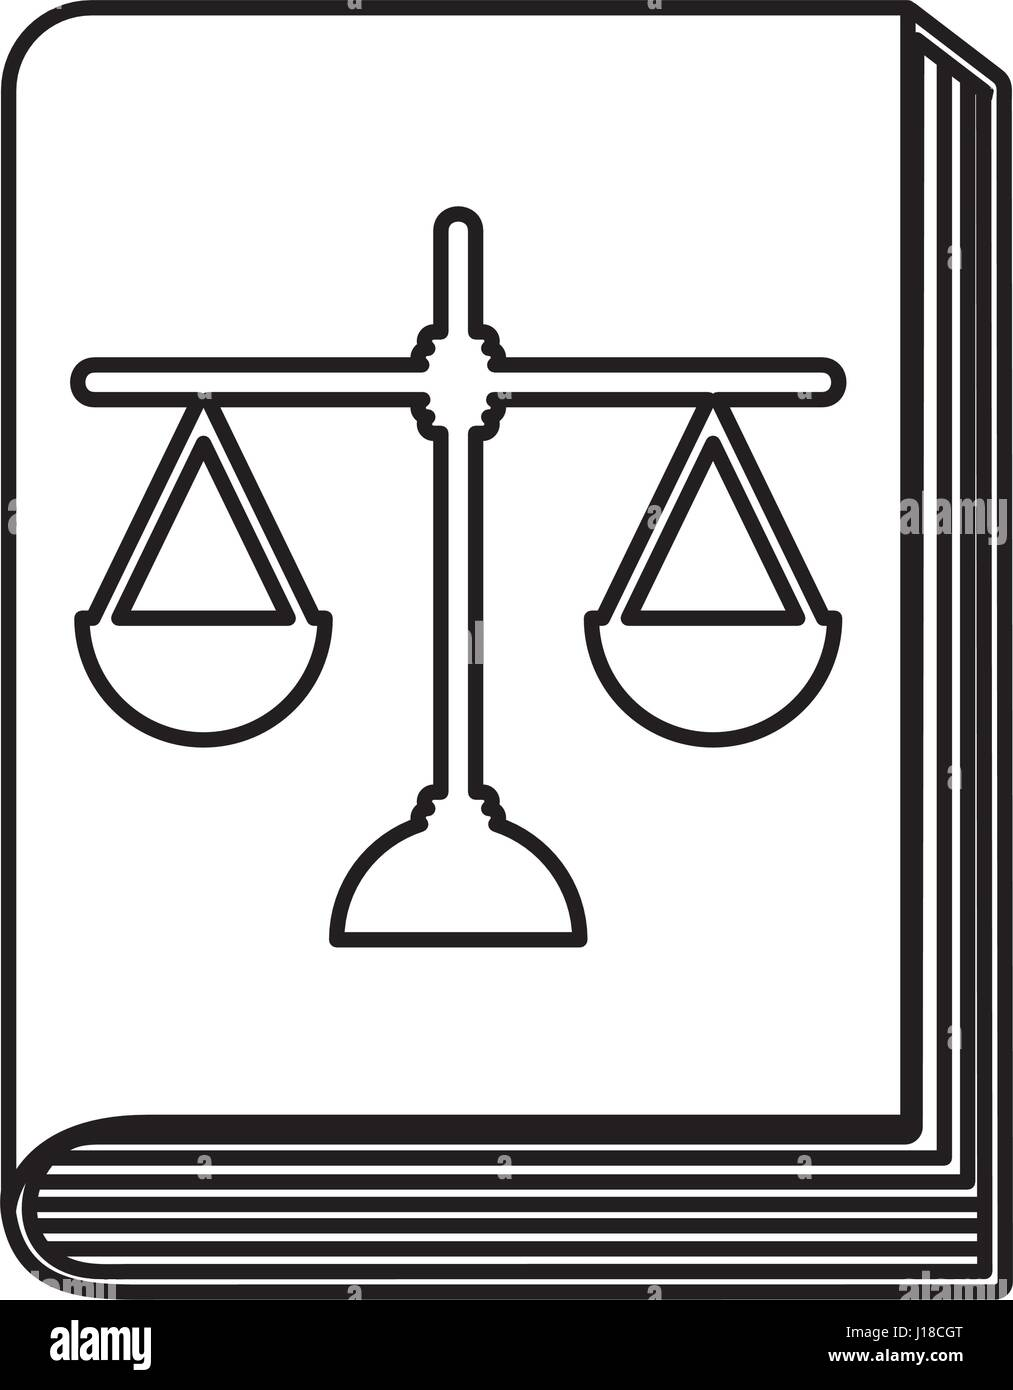 justice book with scale - Stock Vector